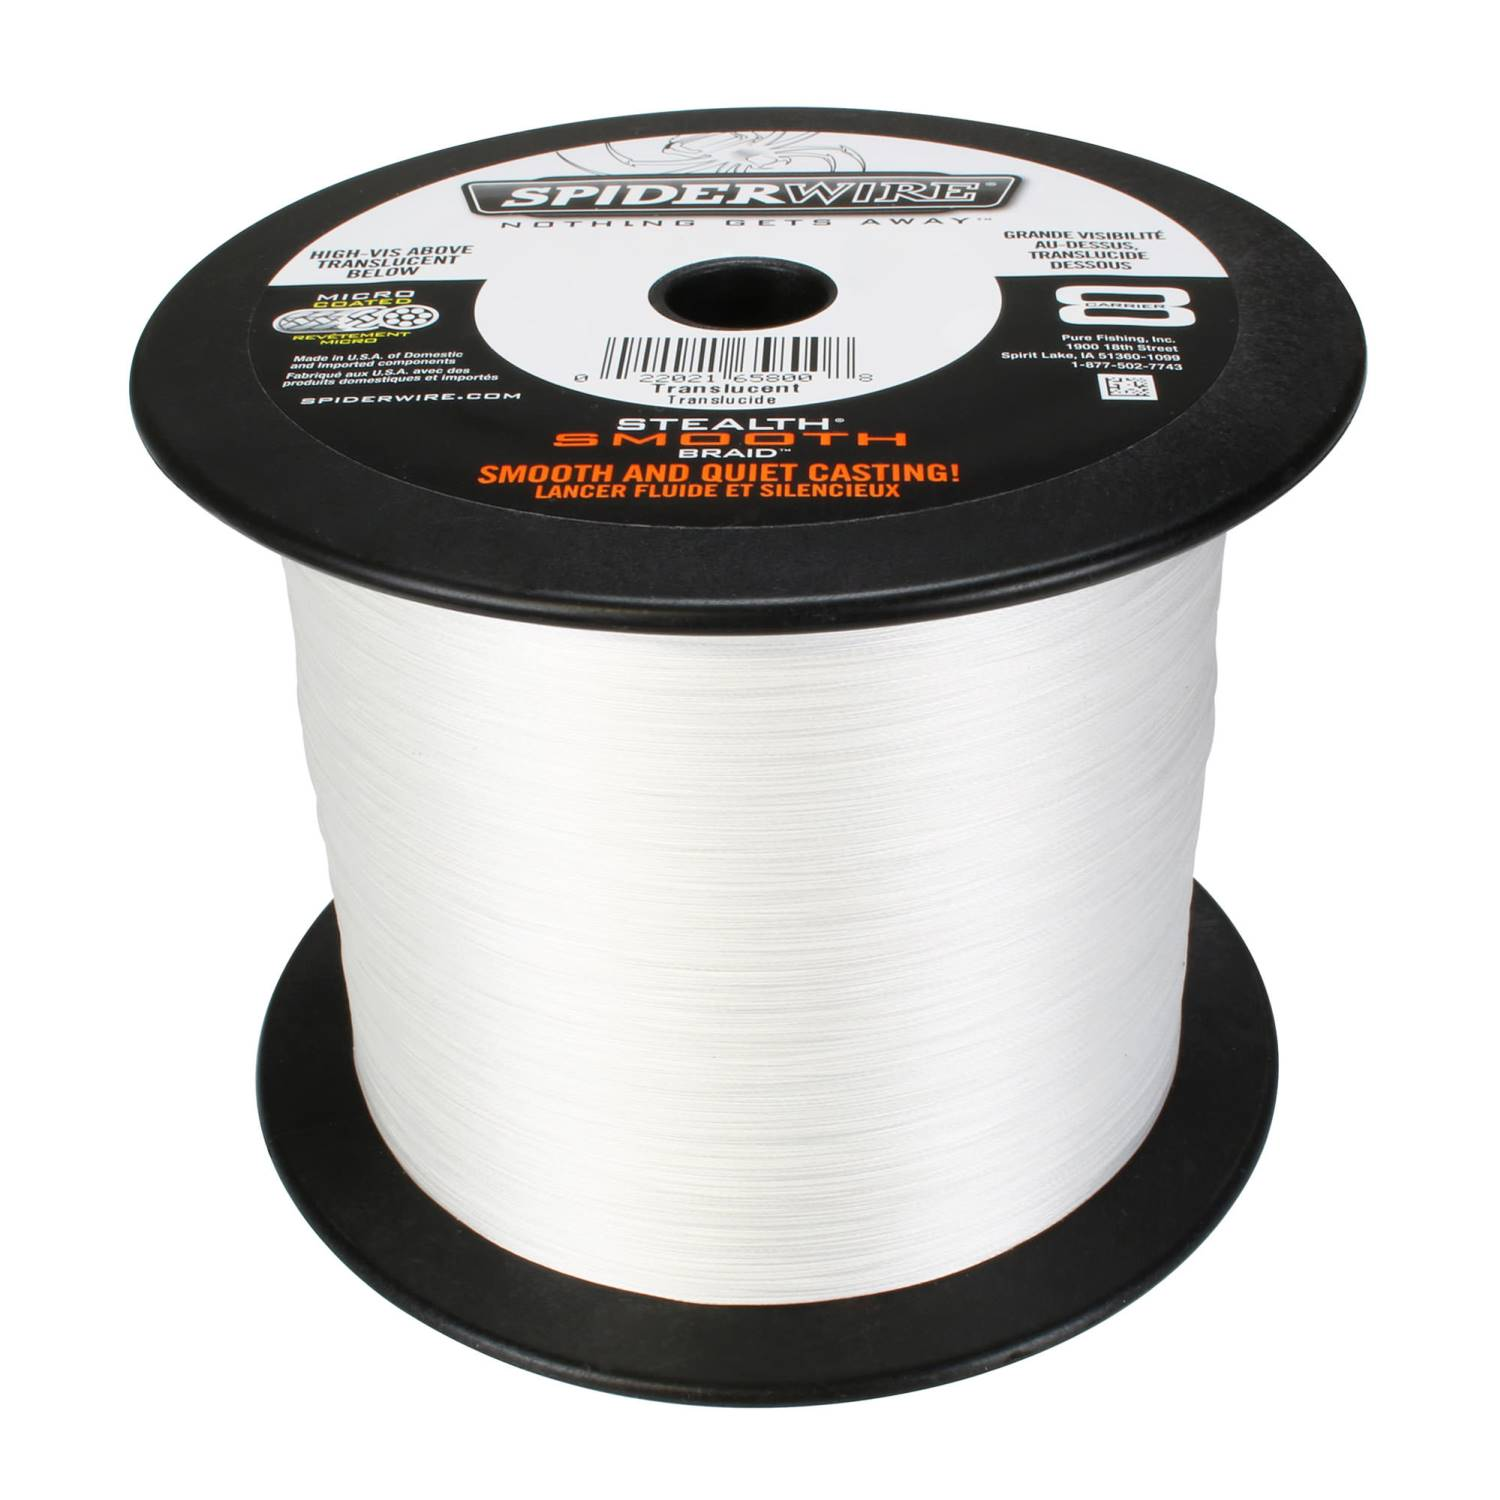 Translucent 0,39mm 0,23mm 150m Spiderwire Stealth Smooth 8 New 2020